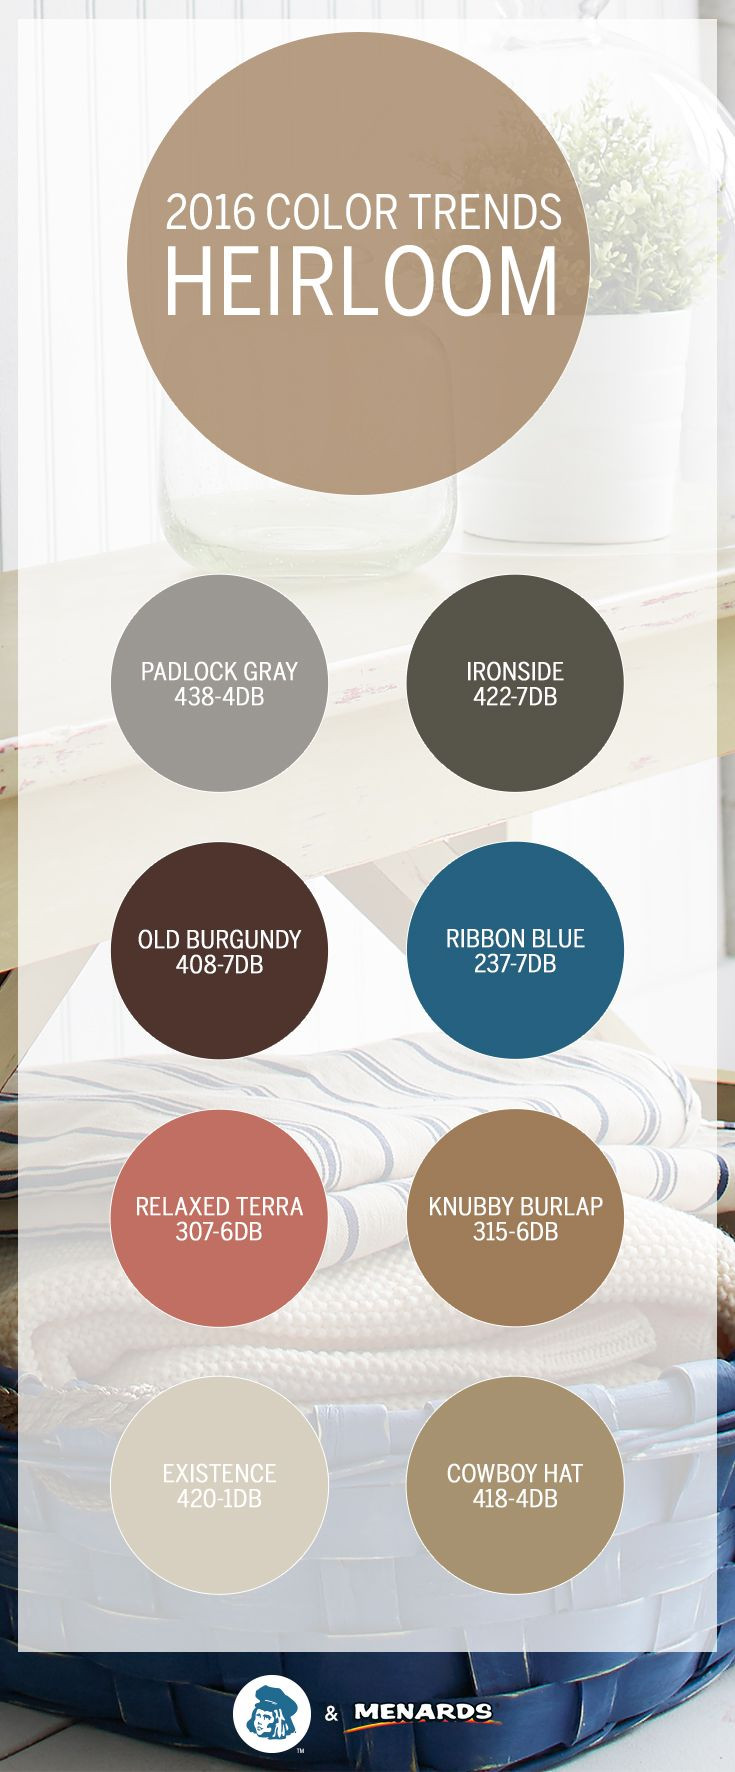 Best ideas about Menards Paint Colors . Save or Pin Best 25 Dutch boy paint colors ideas on Pinterest Now.